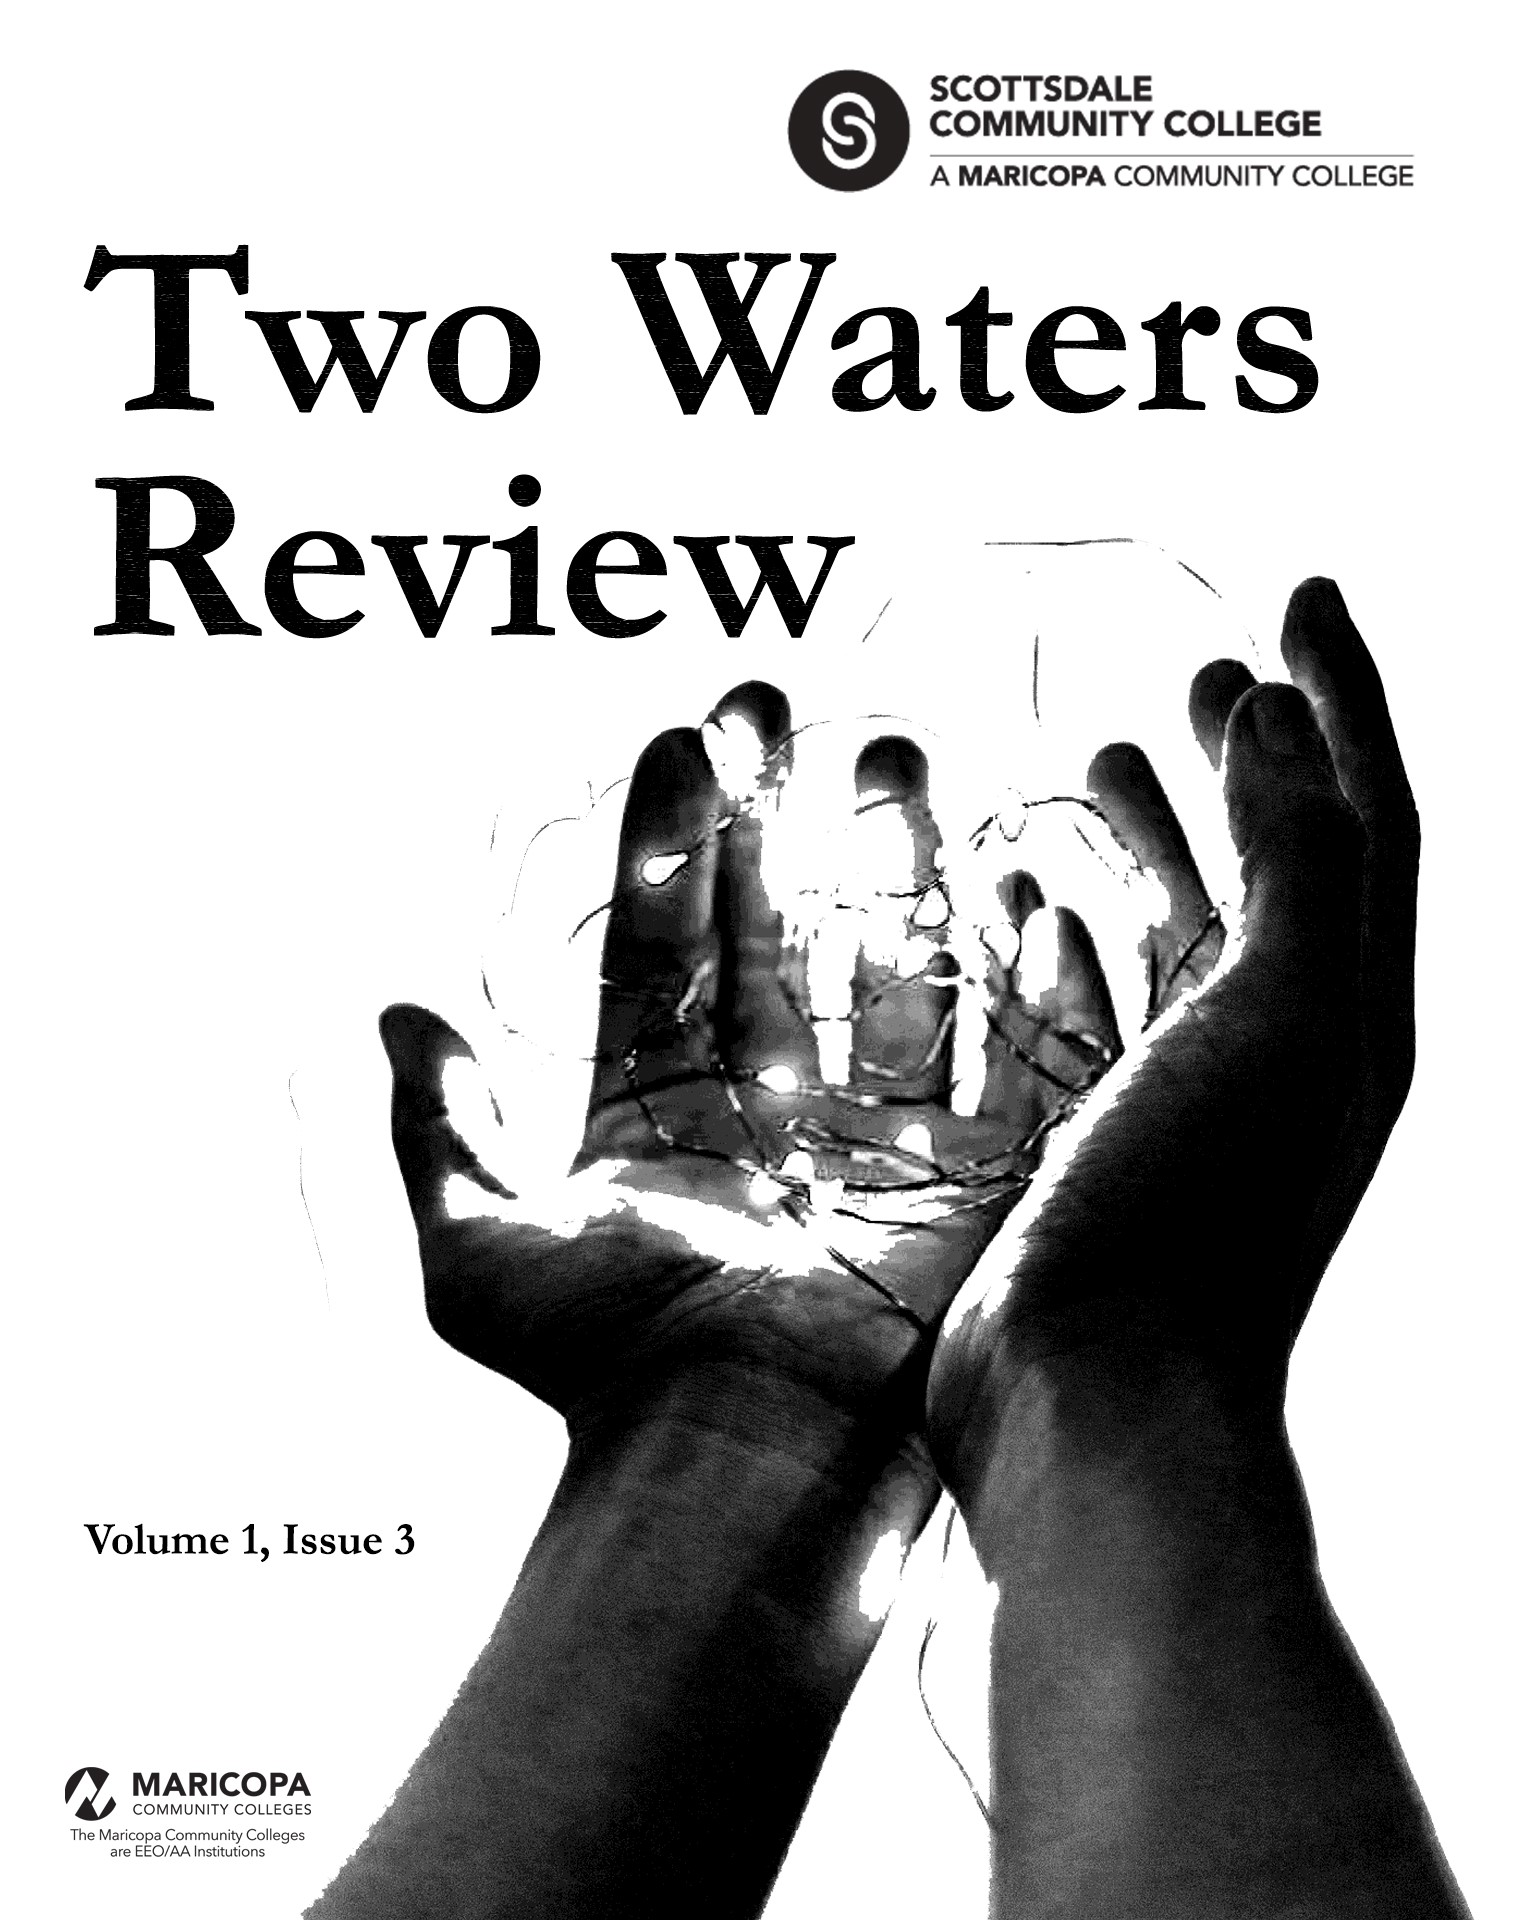 Two Waters Review 1.3 cover image showing hands holding up lights